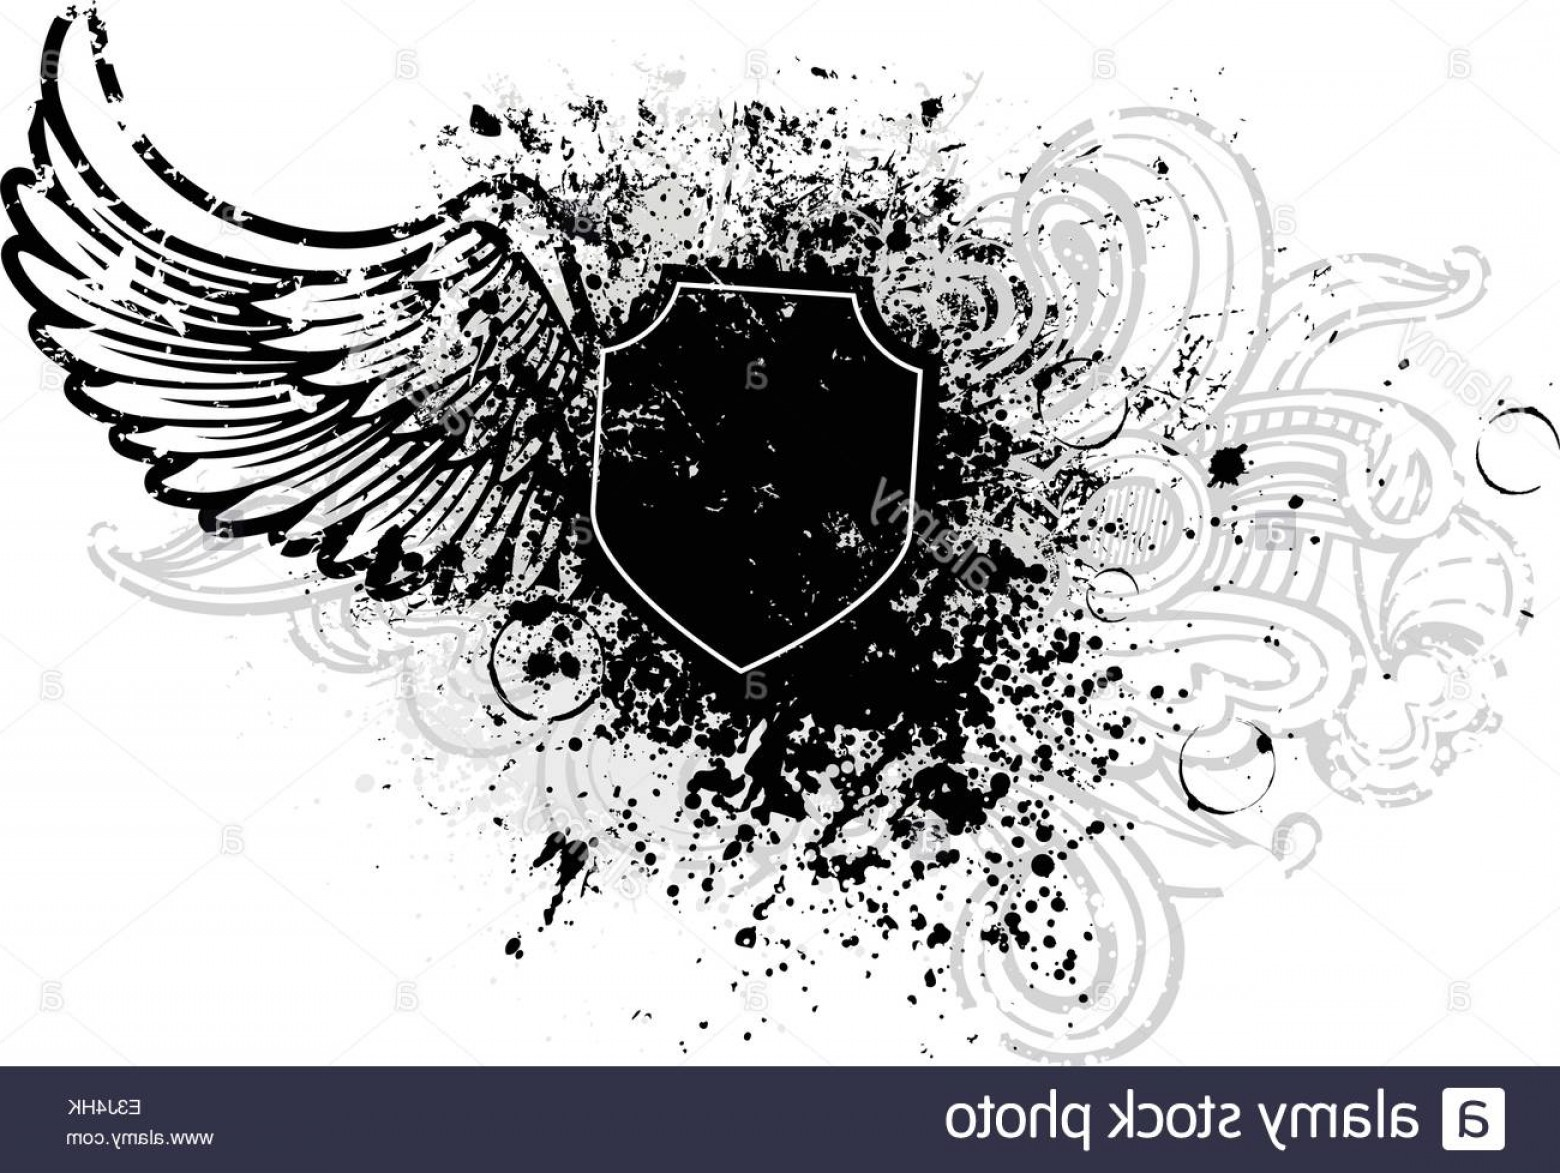 Grunge Scroll Vector Design: Stock Photo Black Shield And Wing Design With Grunge Paint Splatter